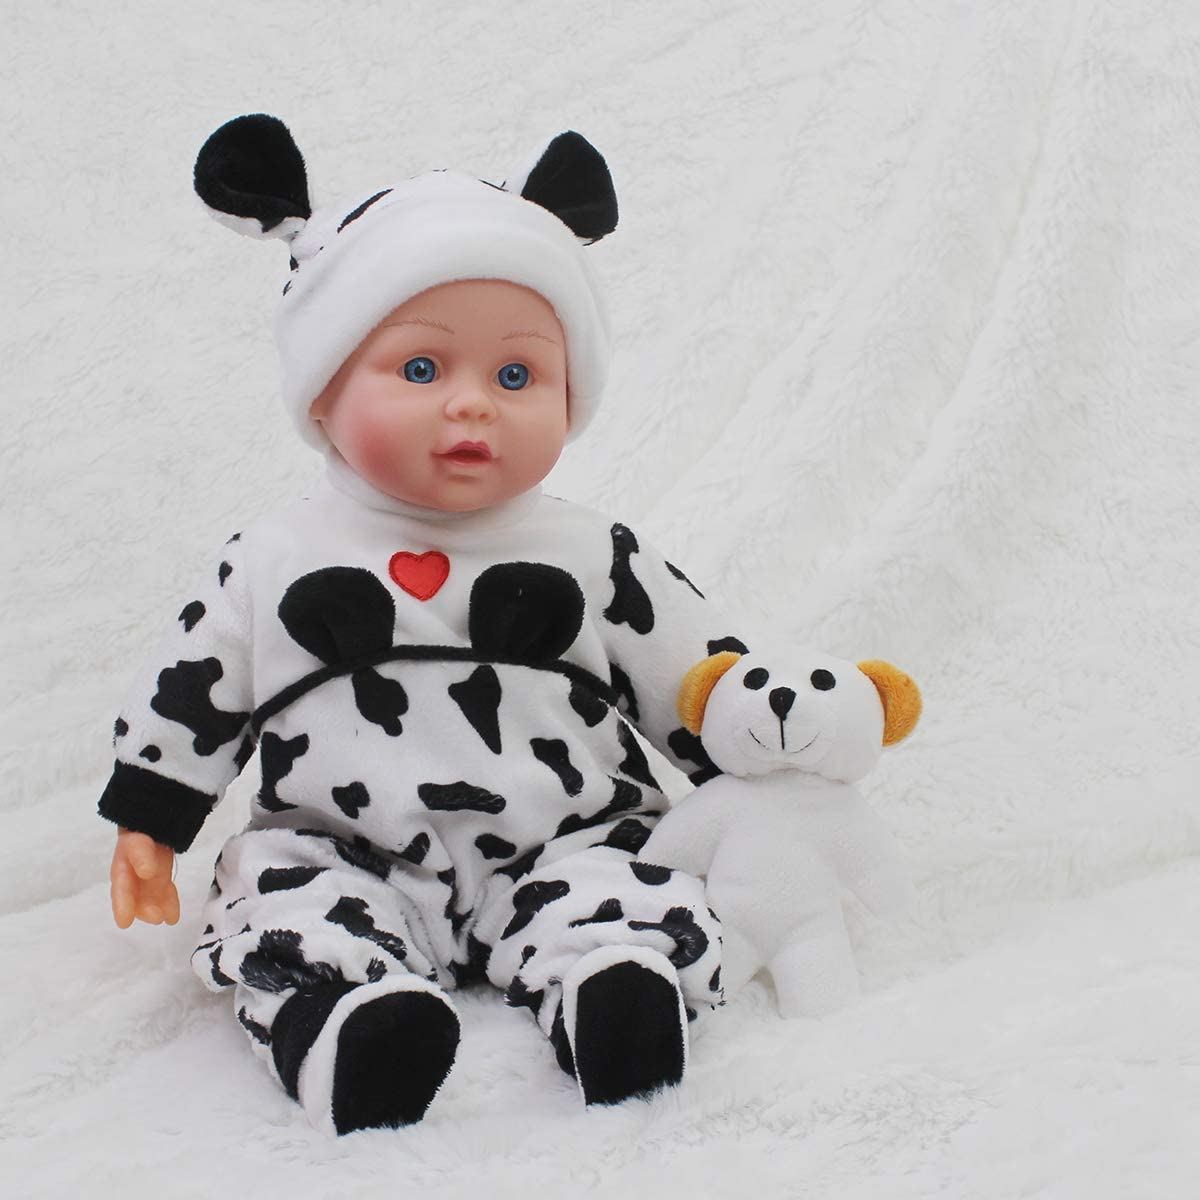 """Sweet One Set 15/"""" Cute Vinyl Doll and Another Rompers for New Born Baby Dolls in Beautiful Gift Box,100/% Removable Washable Cow and Tiger Stripe Design Rompers Vinyl Play Toy with a Bear for Kids"""